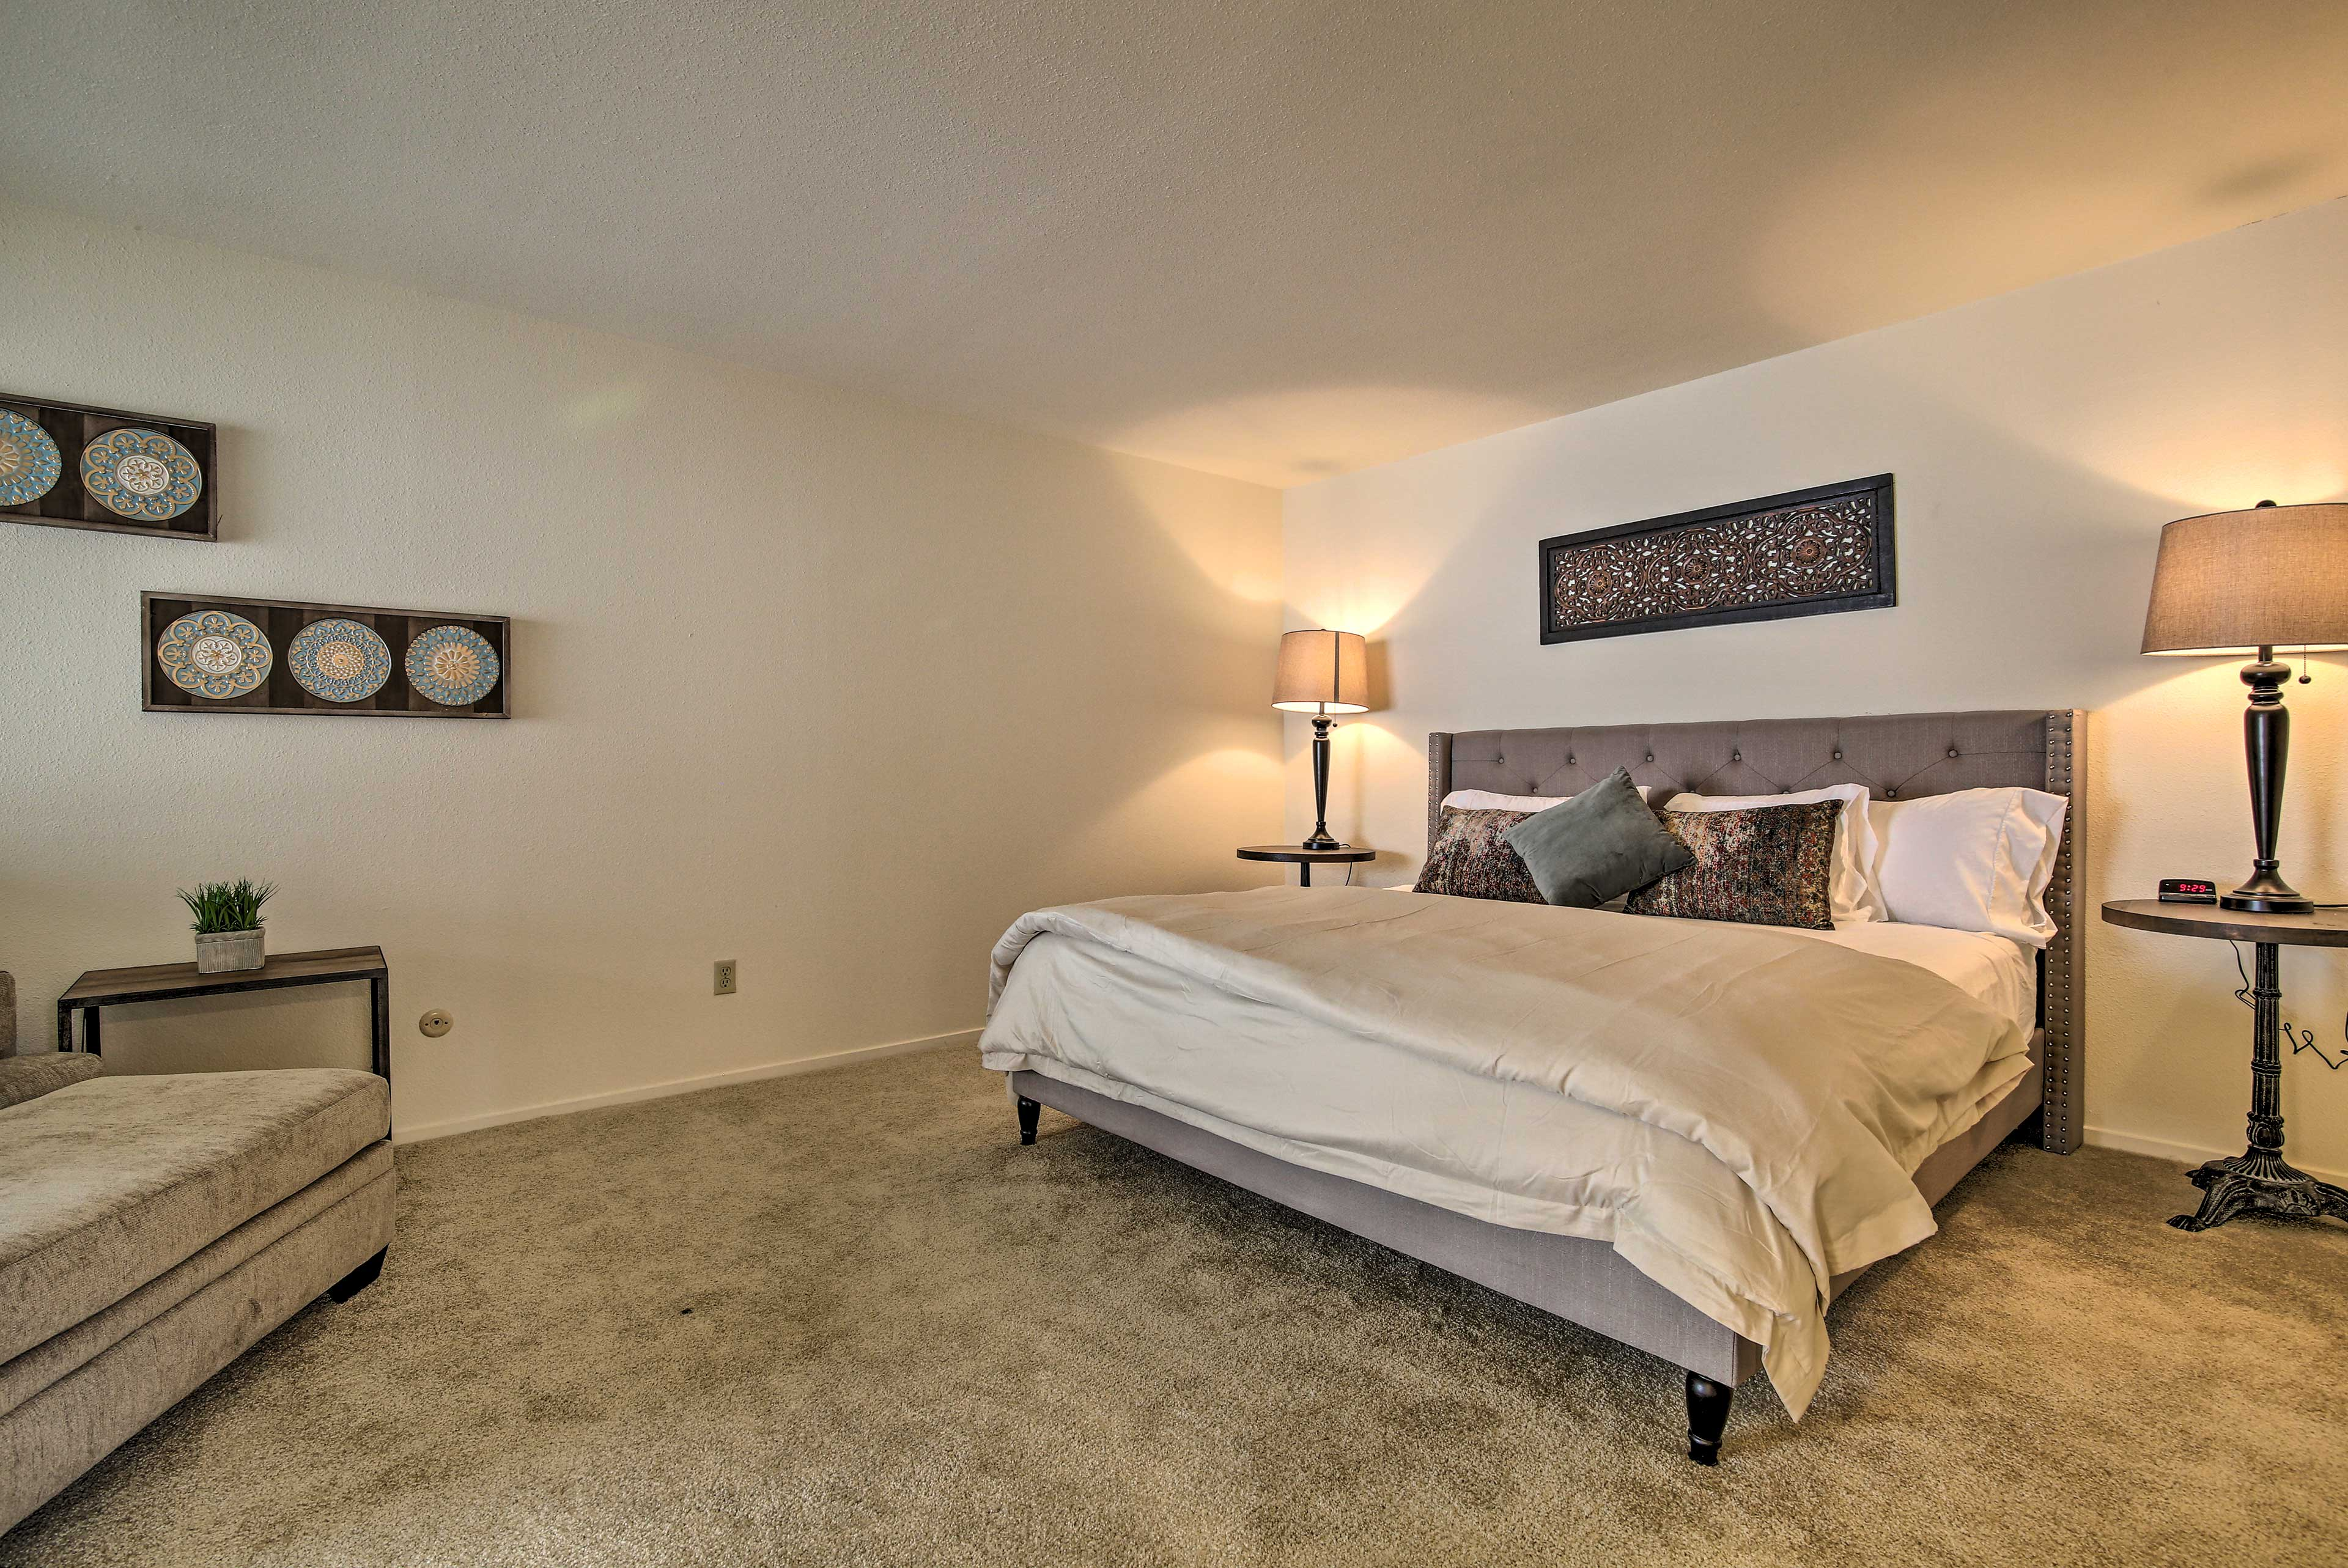 Fall aslleep quickly in the master bedroom.